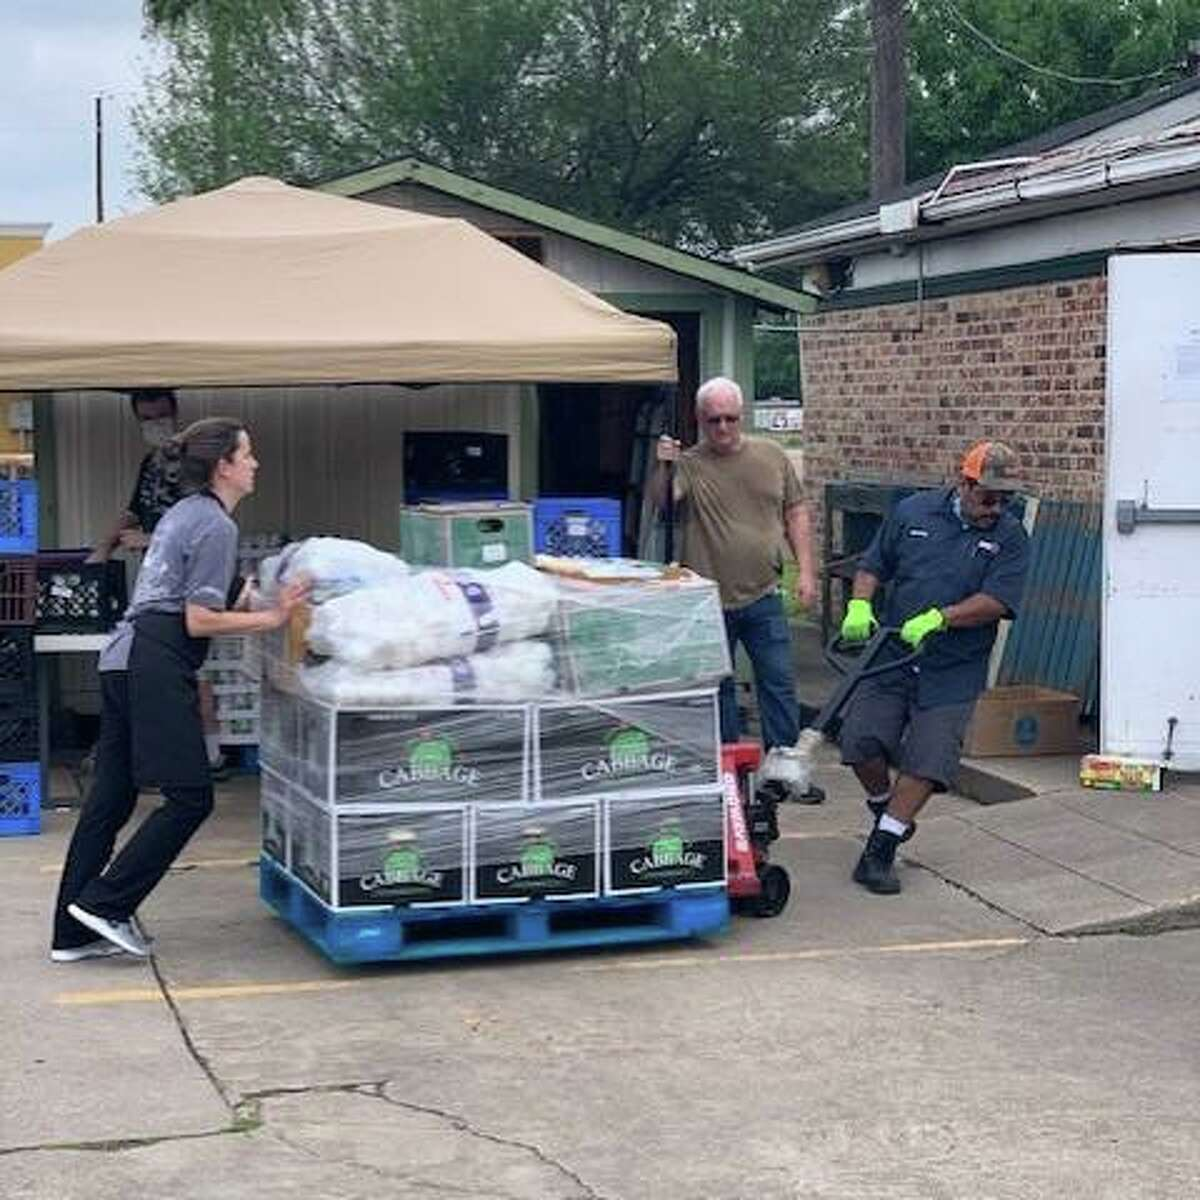 Pantry items are brought in to help Cypress Assistance Ministries meet the area's growing need for food assistance during the ongoing coronavirus pandemic.